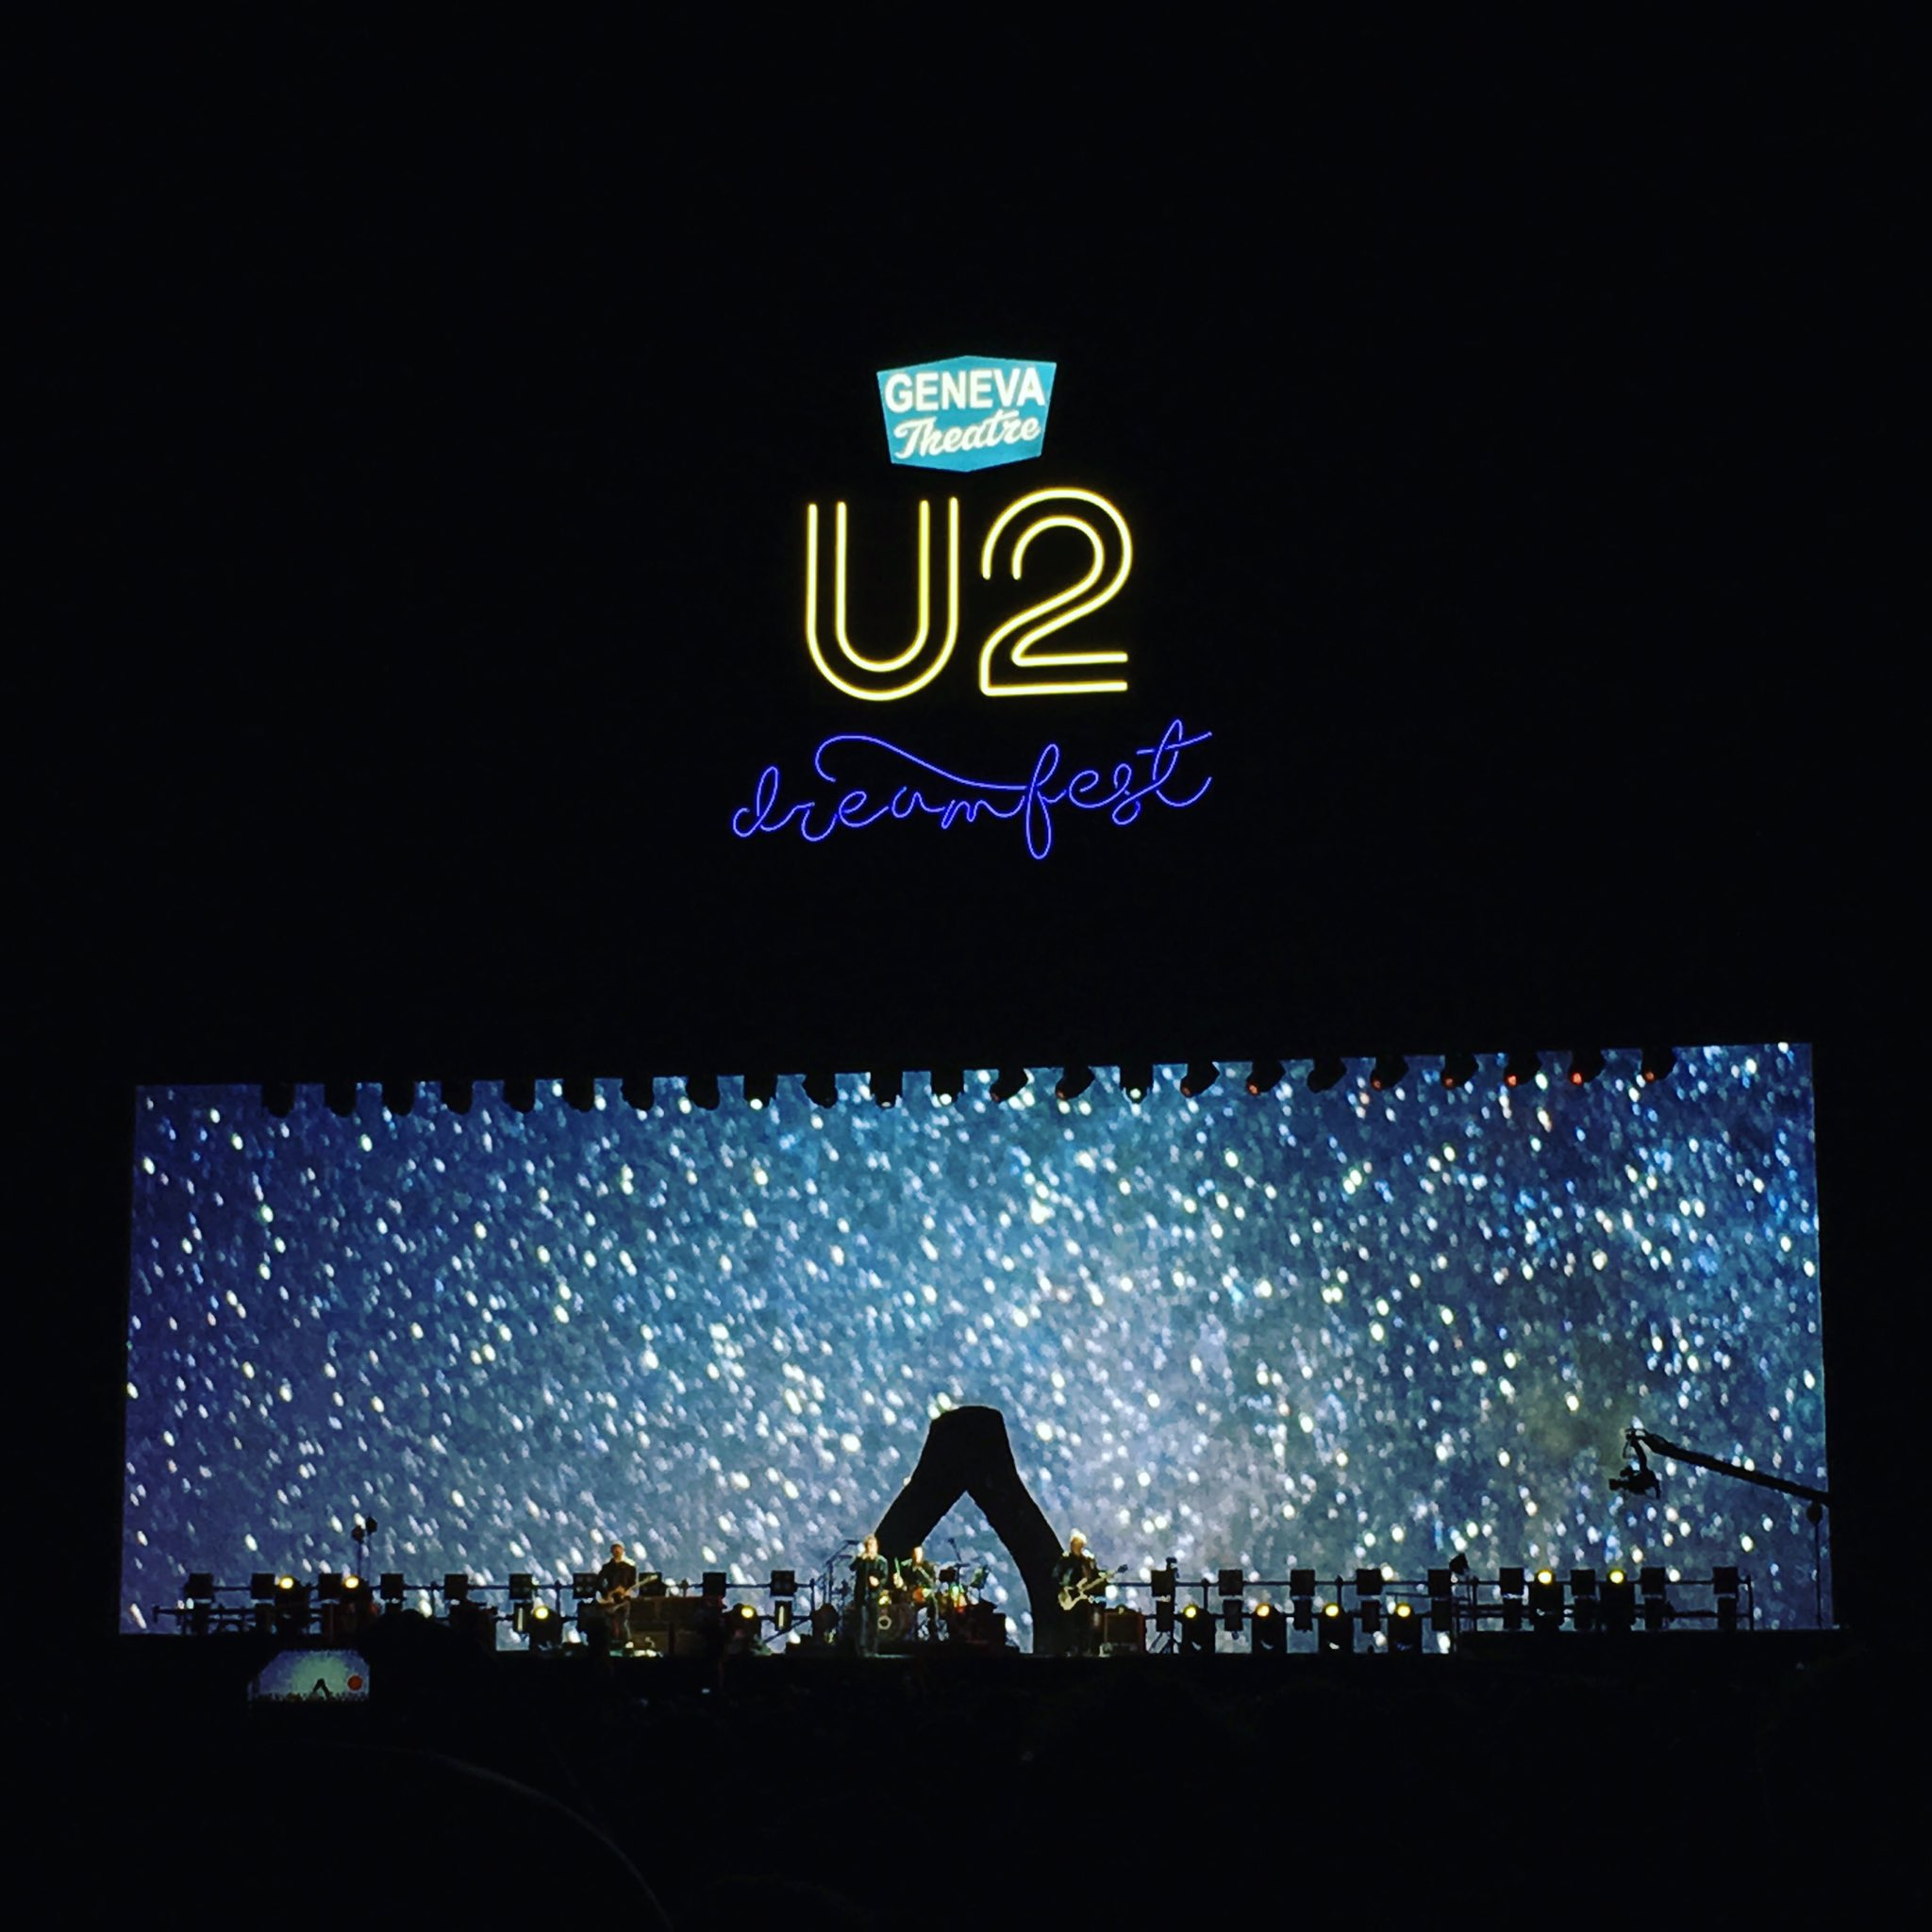 Concierto U2 Dreamforce.jpg